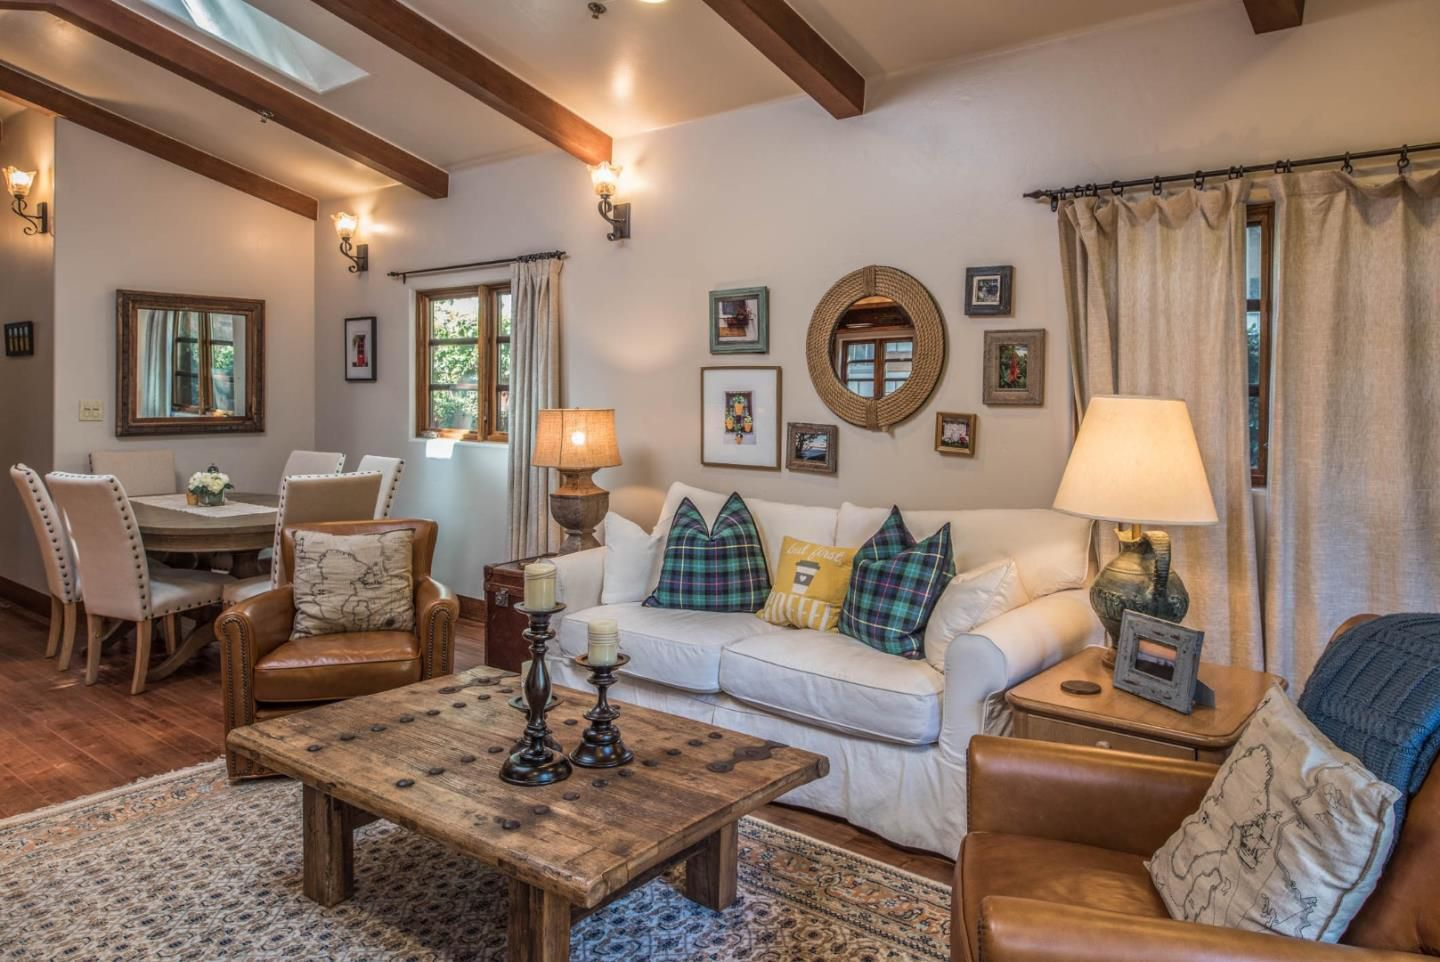 Cottage By The Sea Casa Carmela Is The Cutest Ever Small Room Design Small Spaces Cottage Living Rooms #small #cottage #living #room